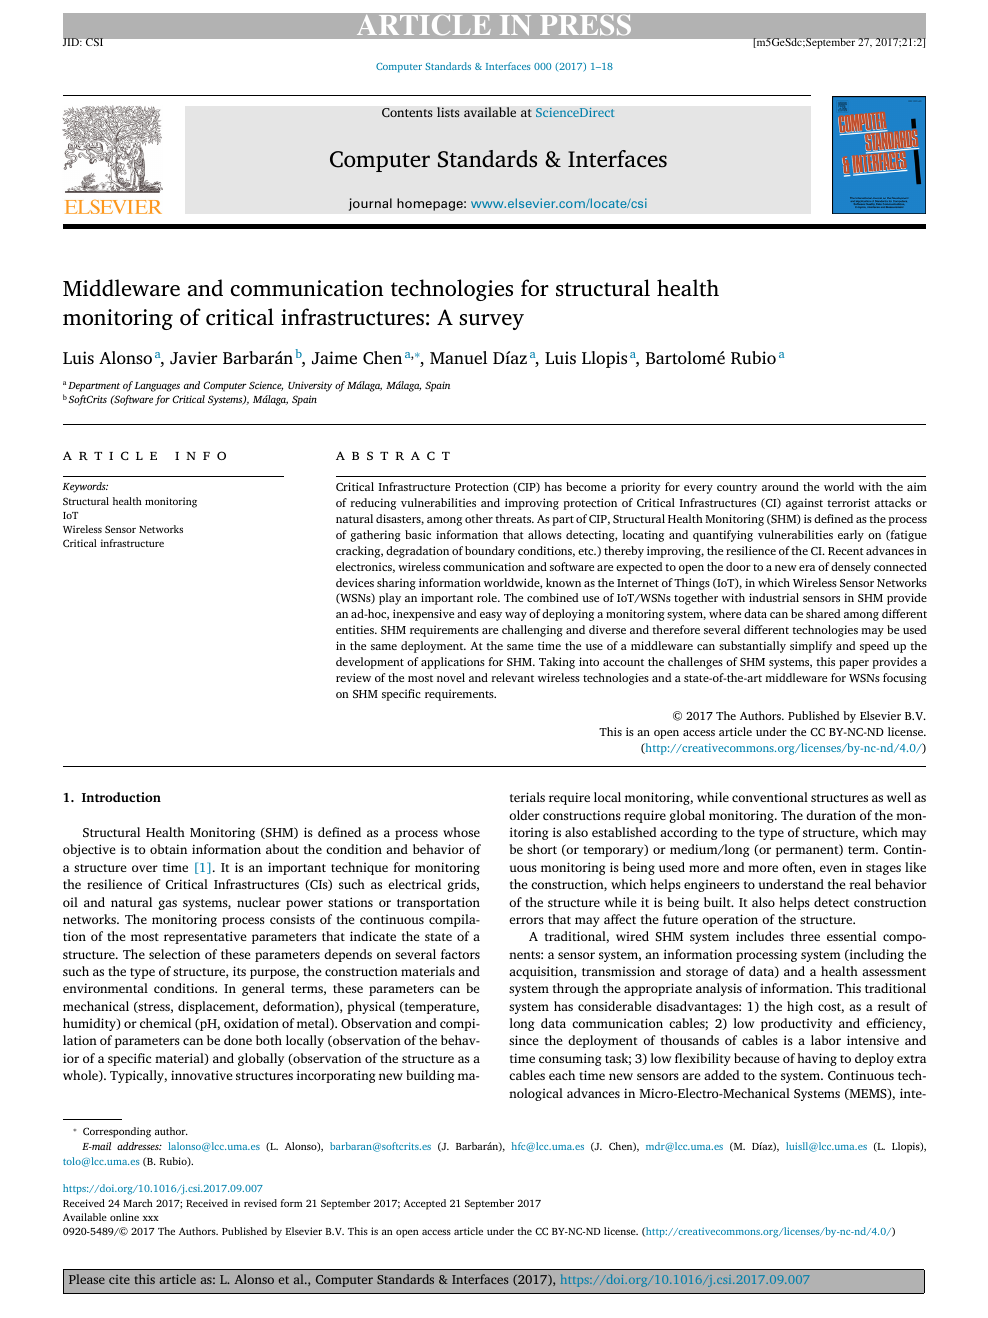 Middleware and communication technologies for structural health